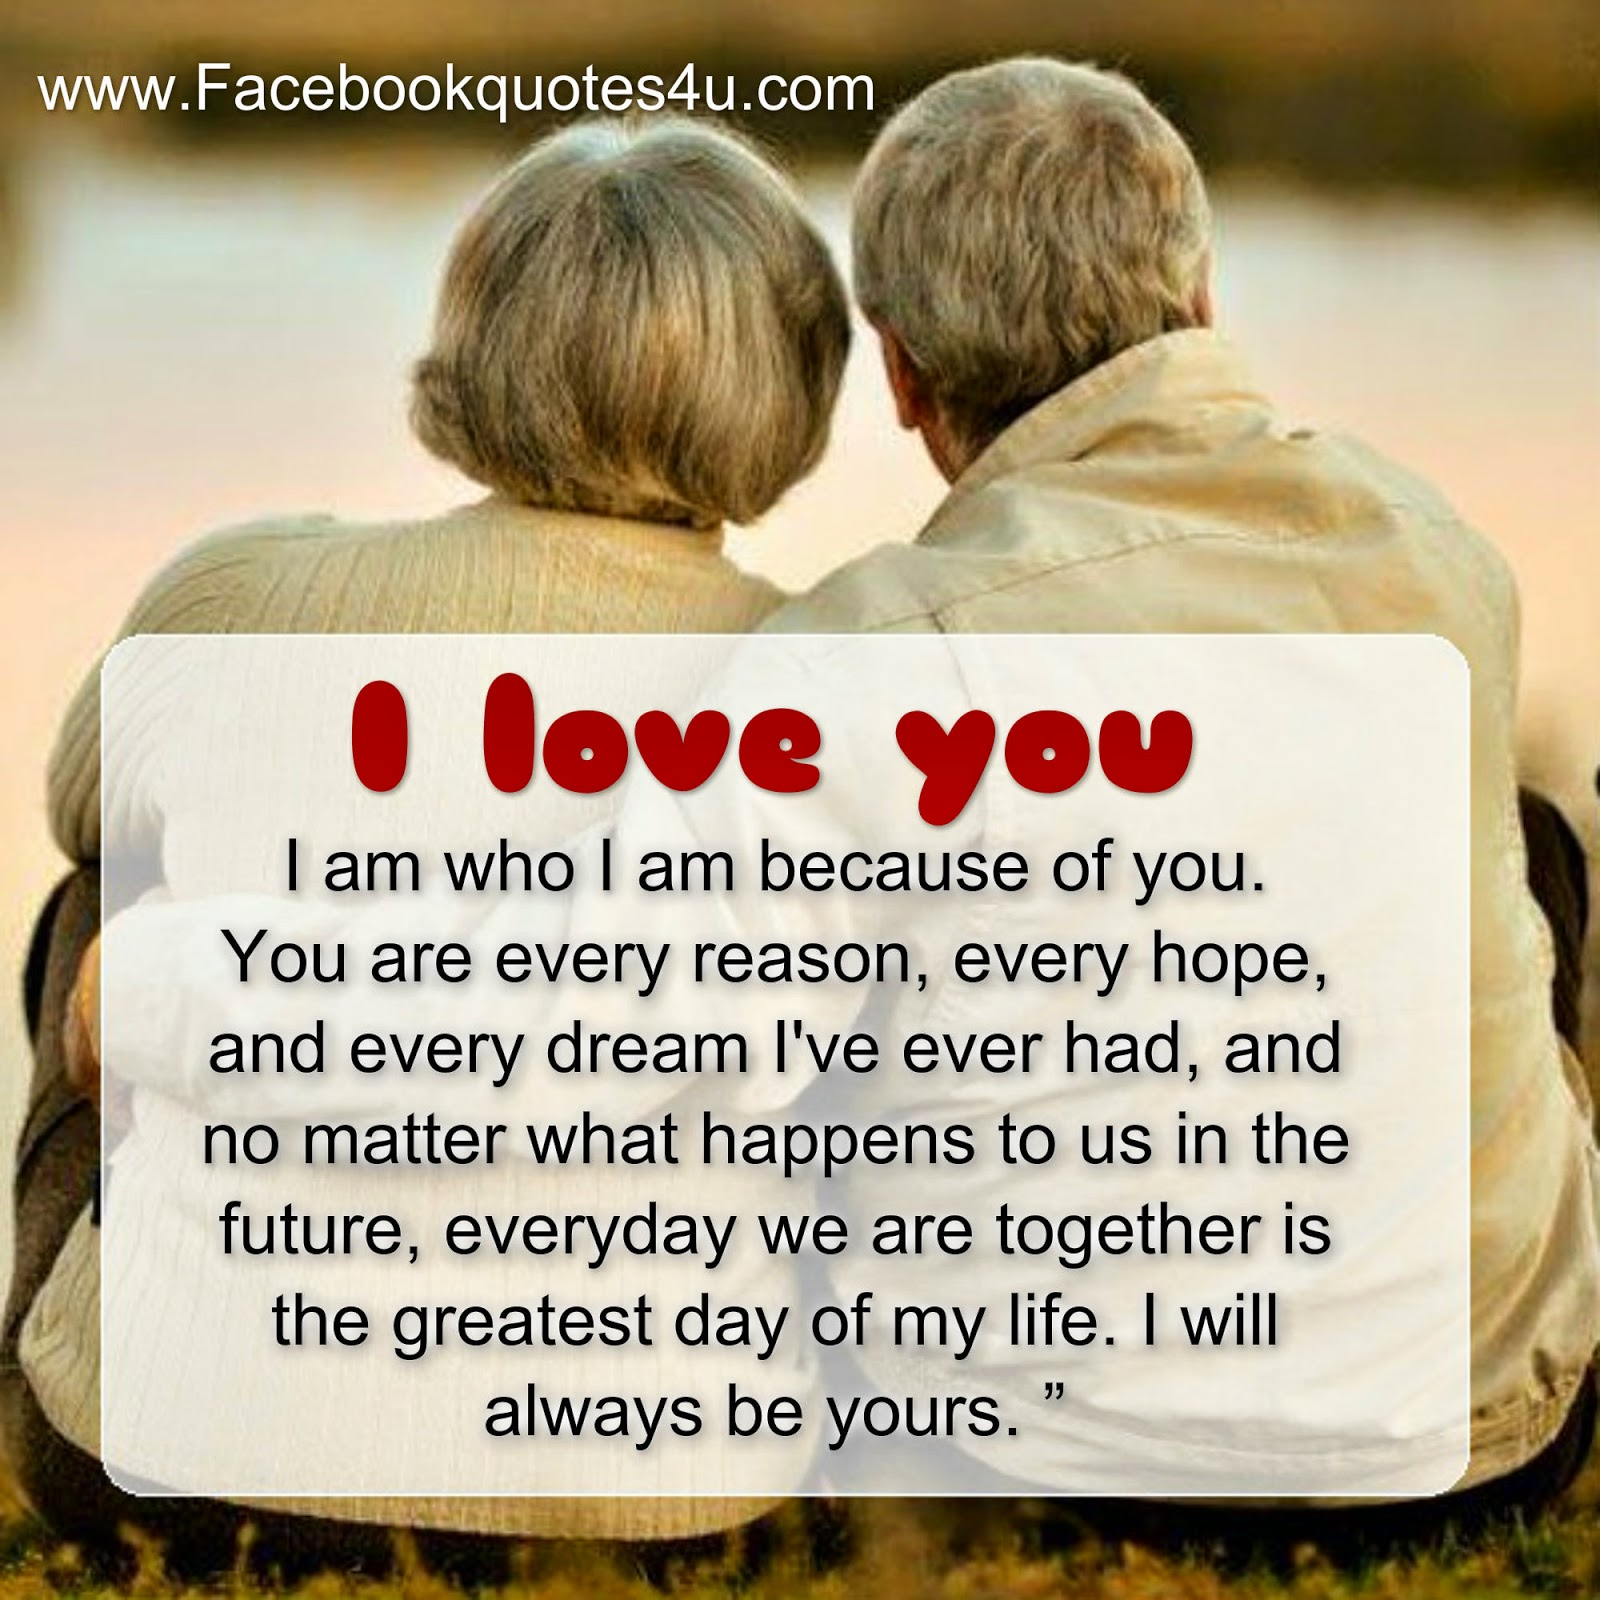 """No matter what happens to us I will always be yours """""""